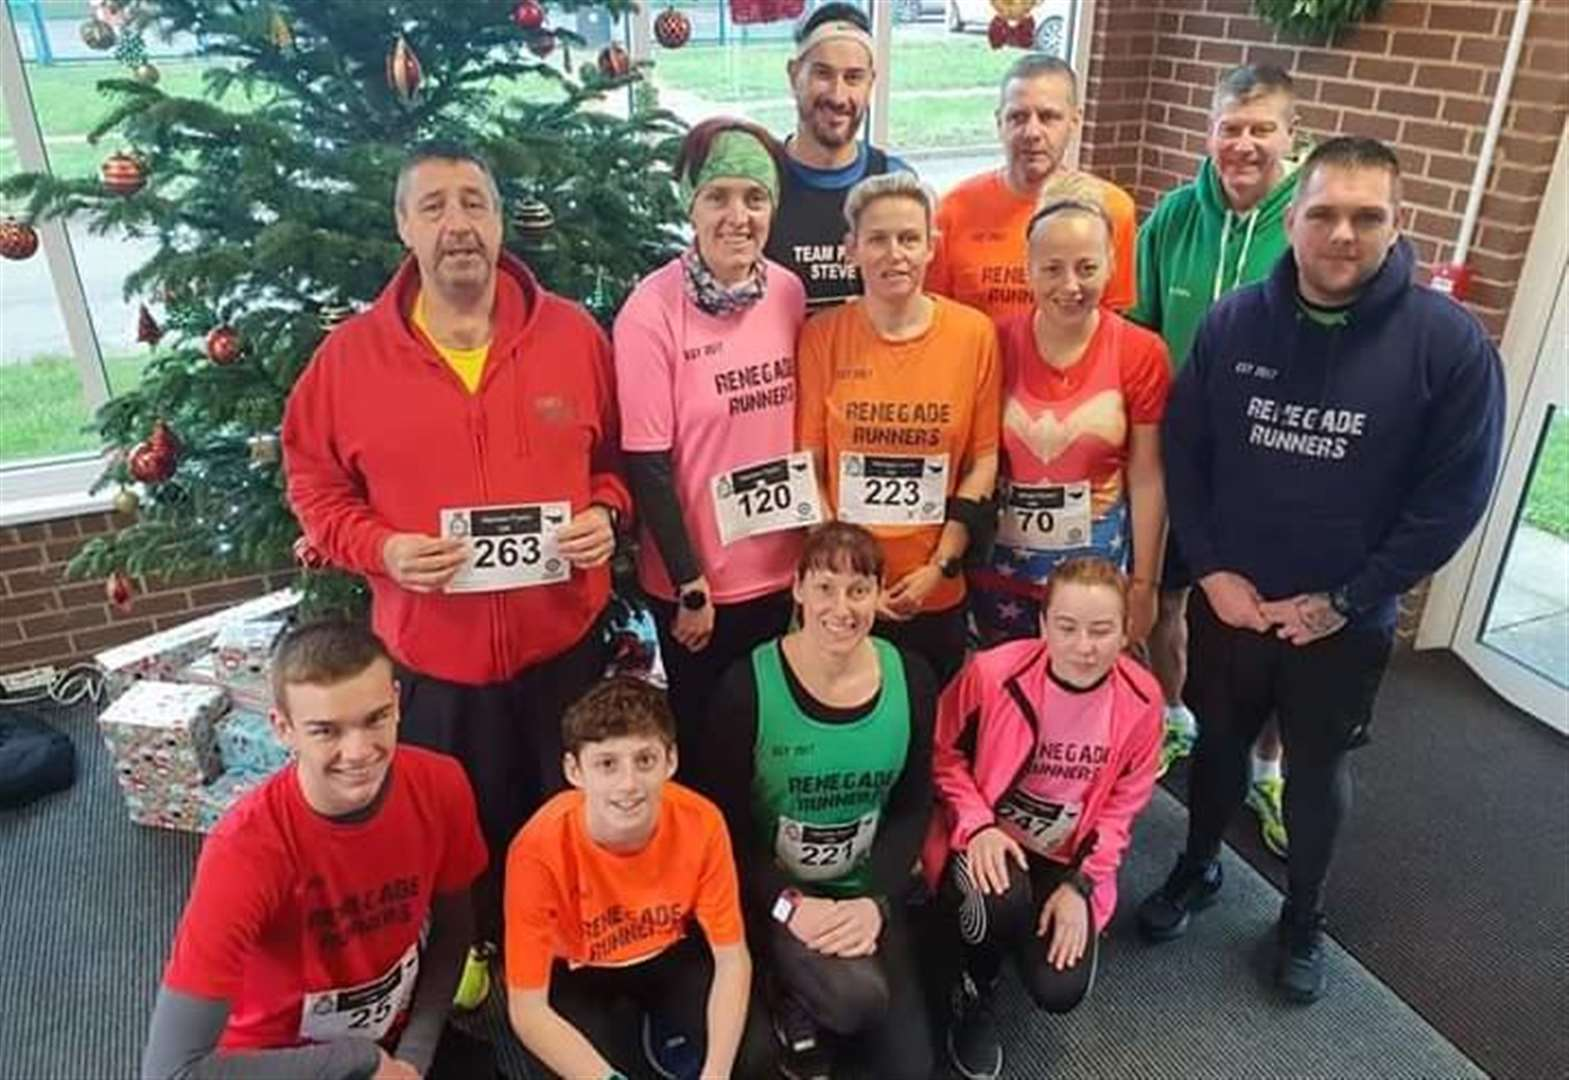 Renegade Runners make their mark in annual Marham Flyers race